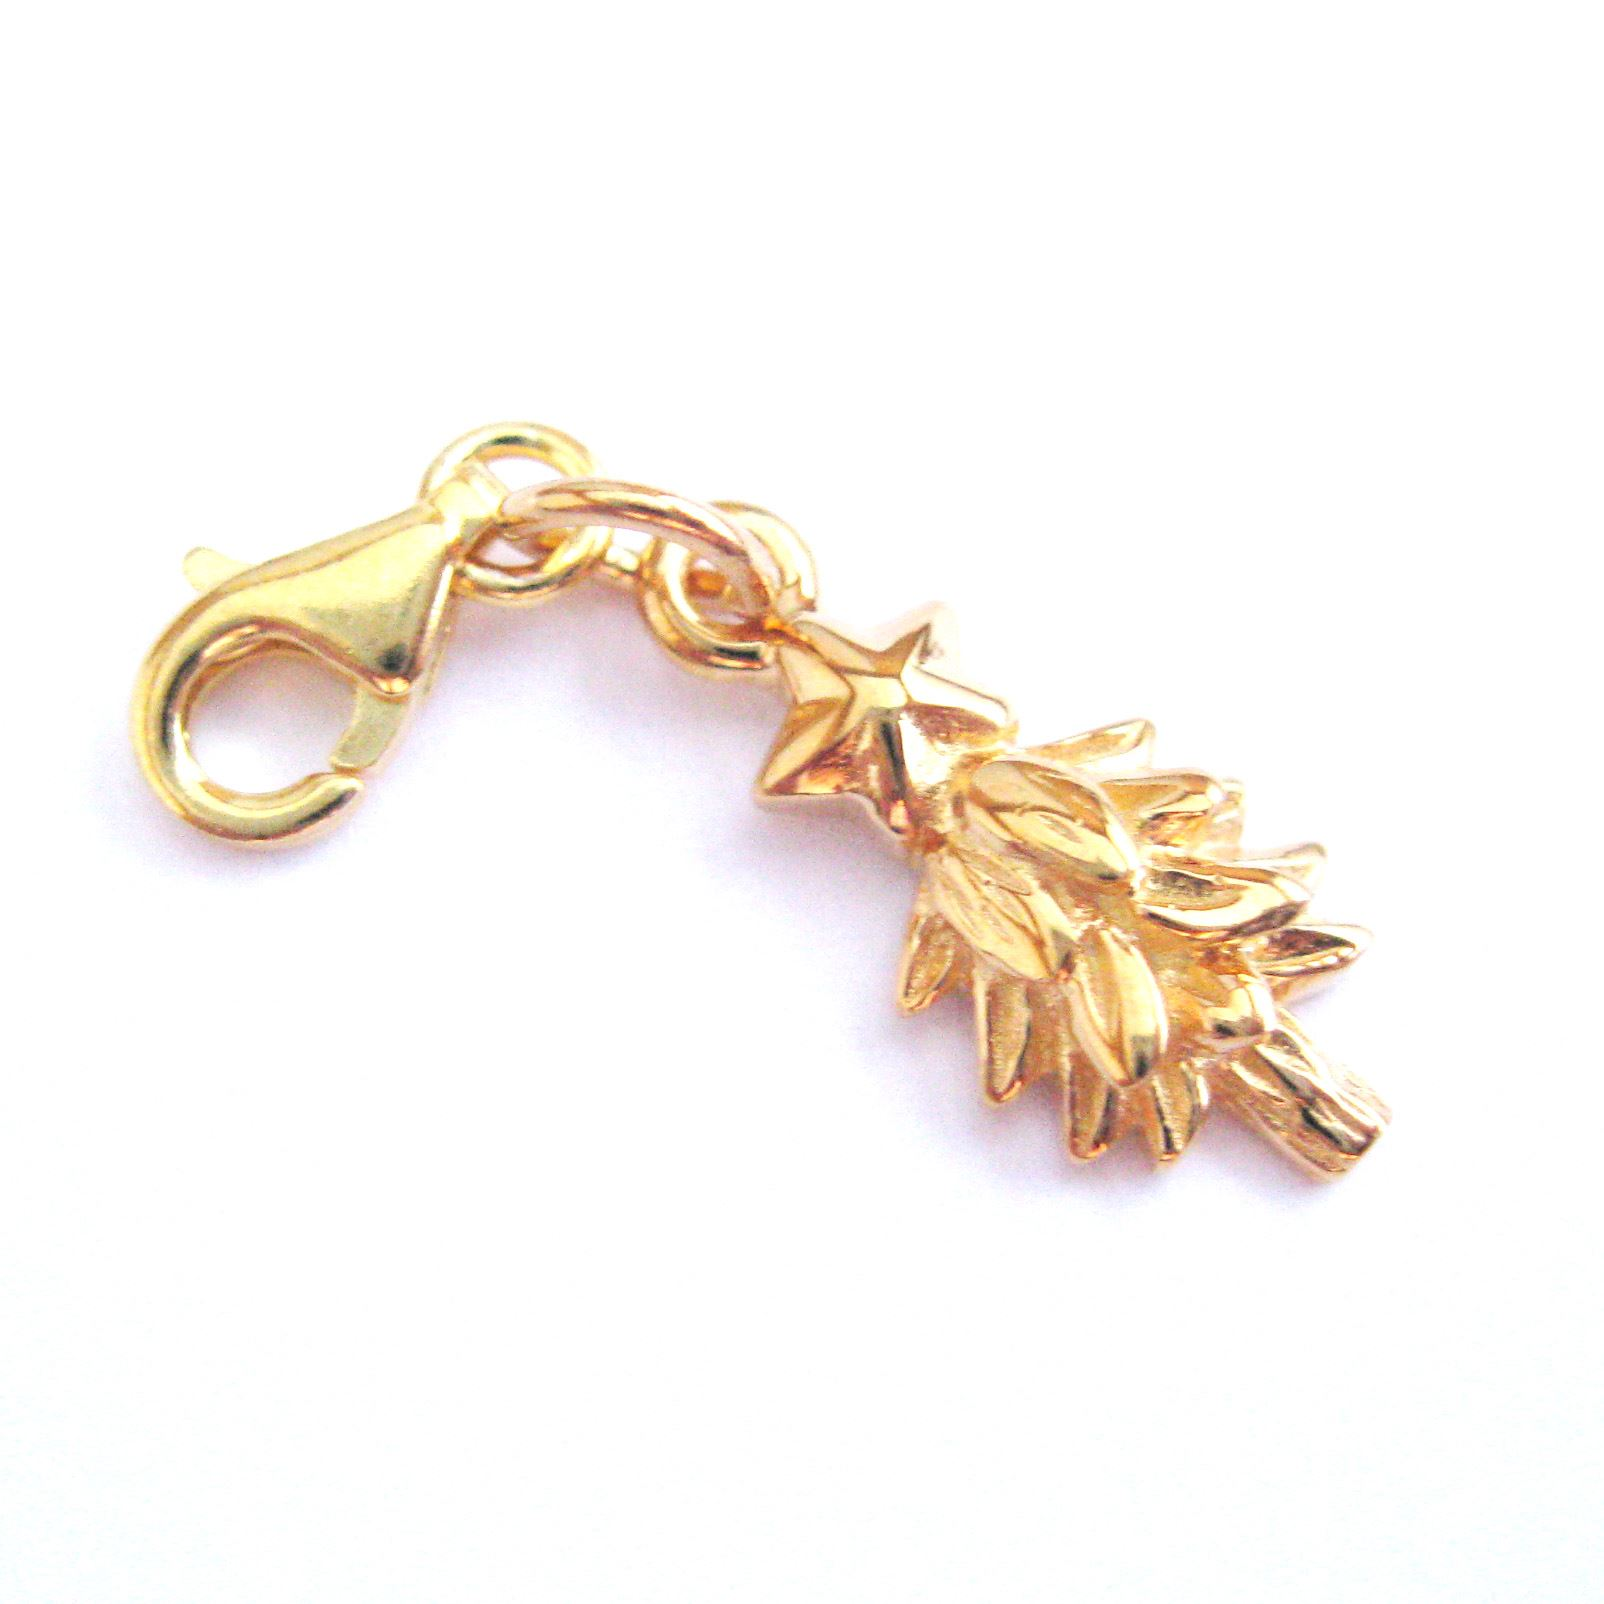 22K Gold plated  Sterling Silver Holiday Tree with Star Charm - Charm with Clasp - Charm Bracelet Charm- Add on Charm